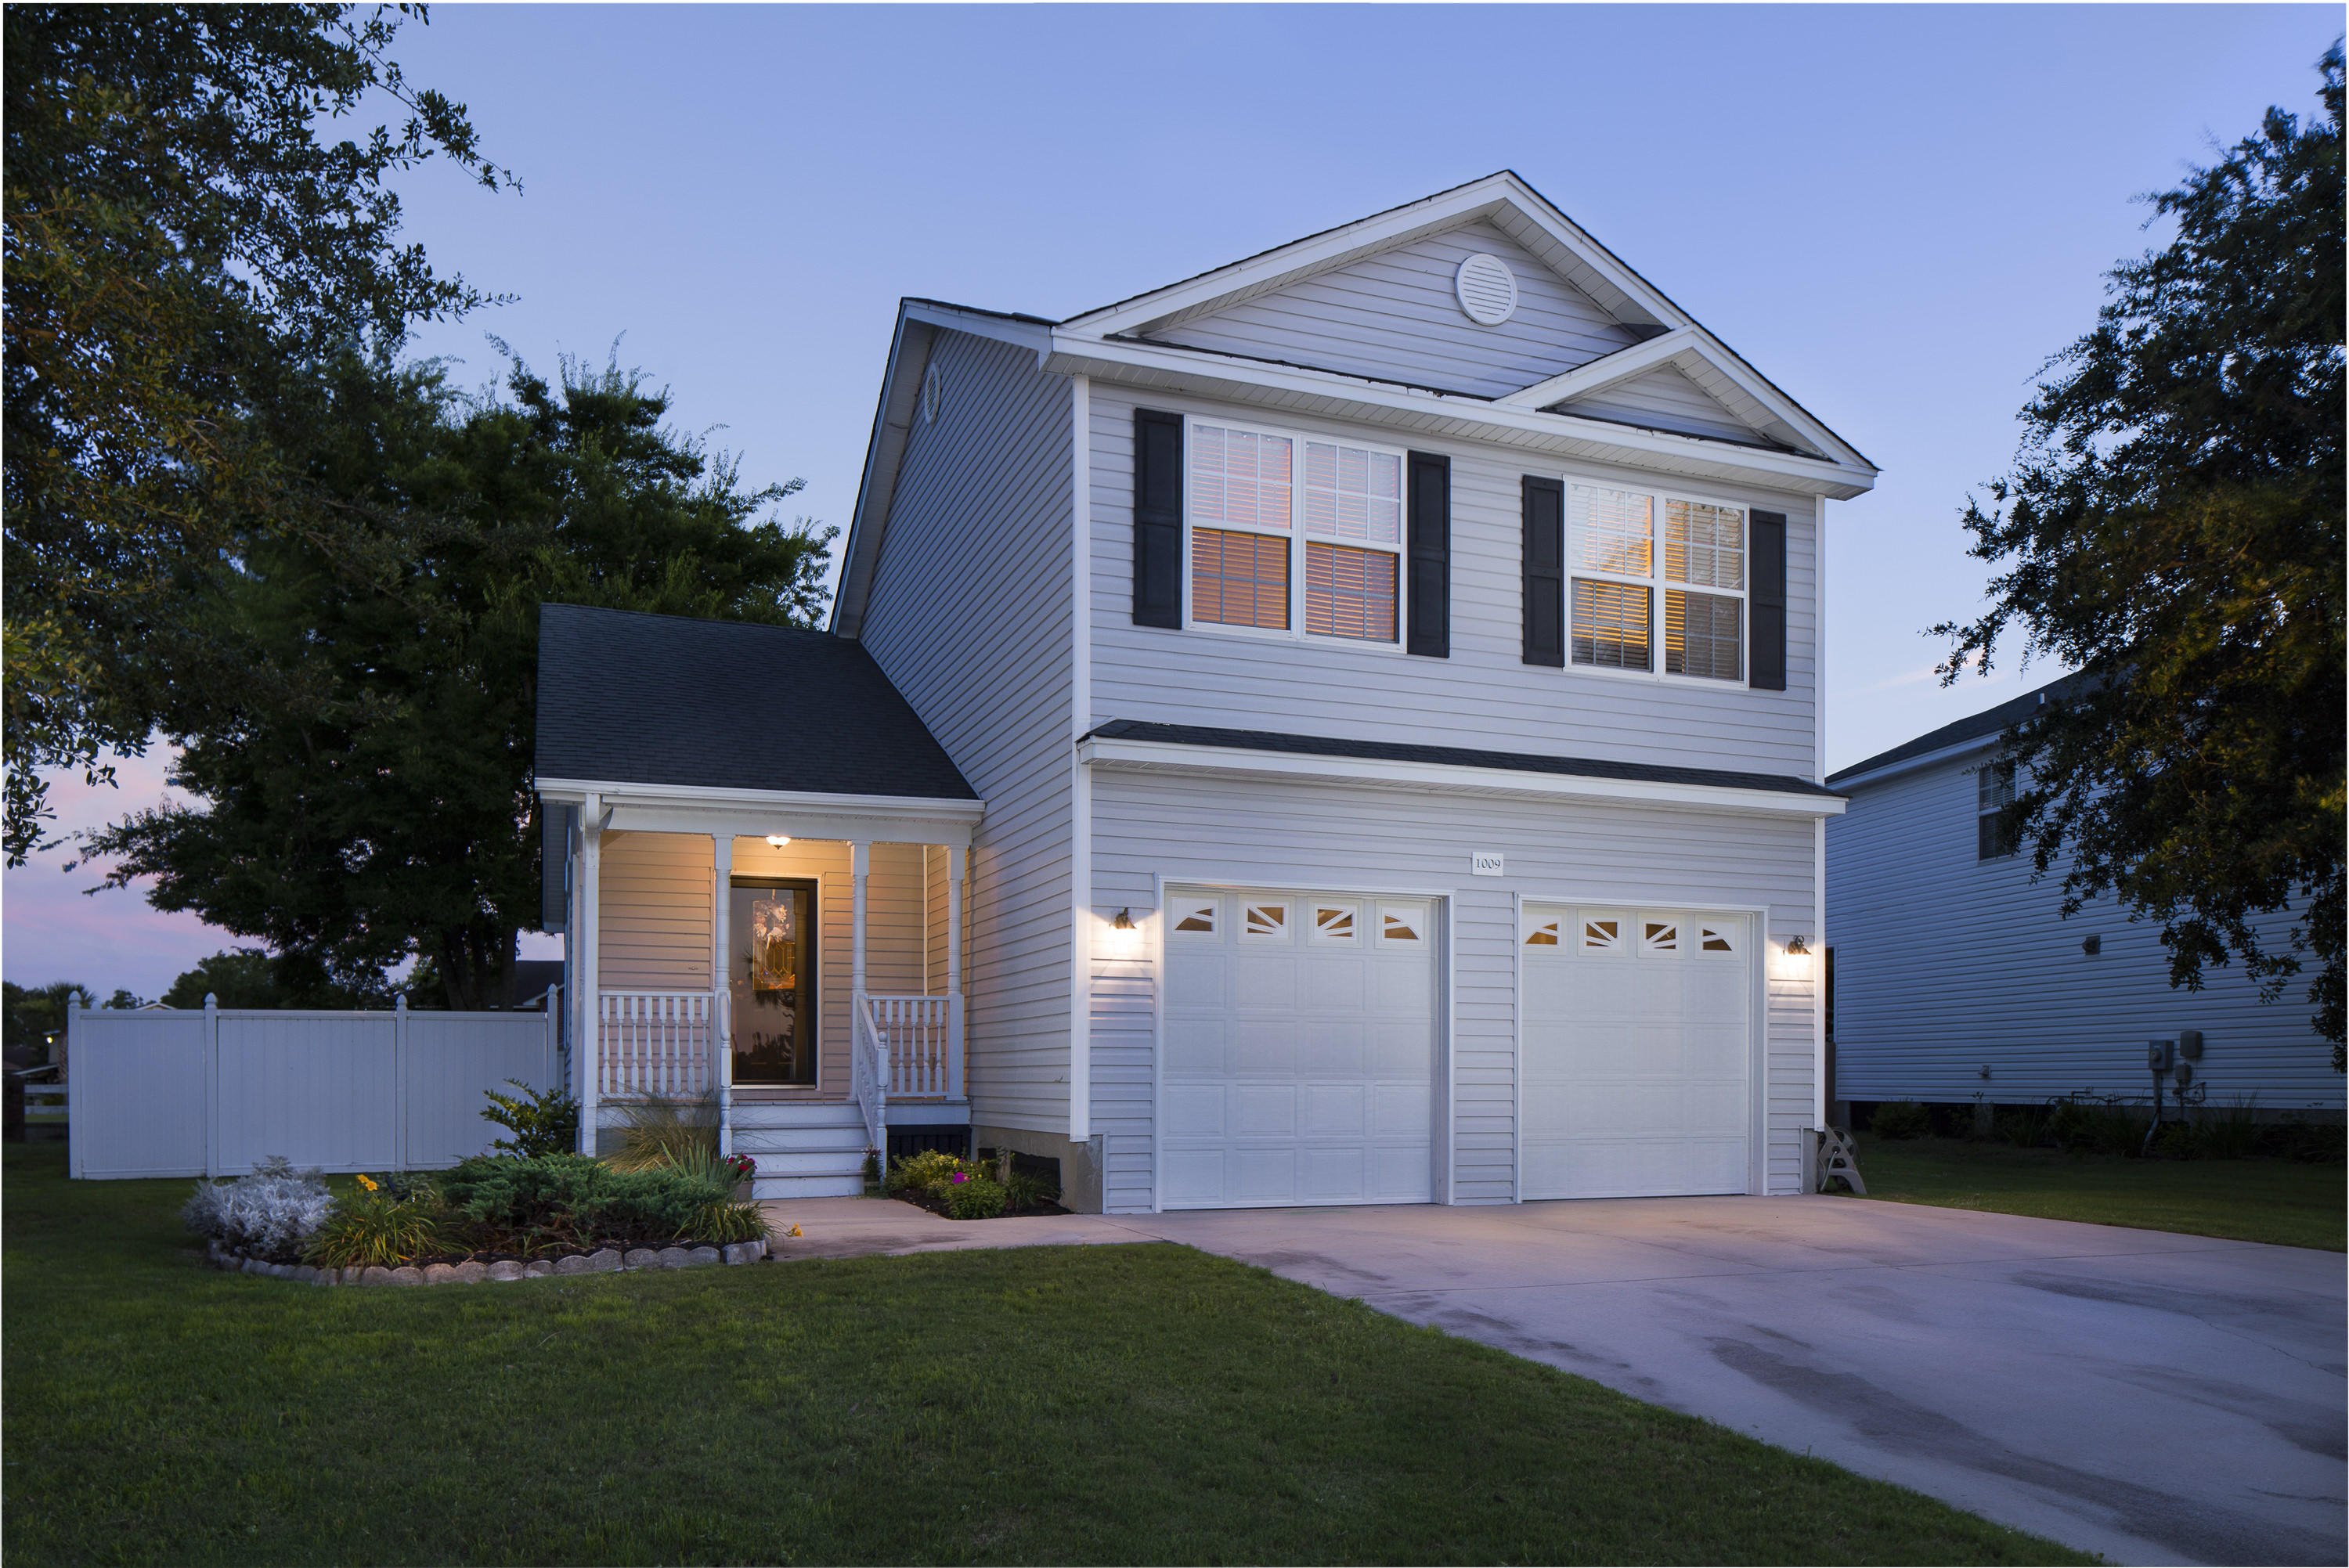 Home for sale 1009 Clearspring Drive, Ocean Neighbors, James Island, SC